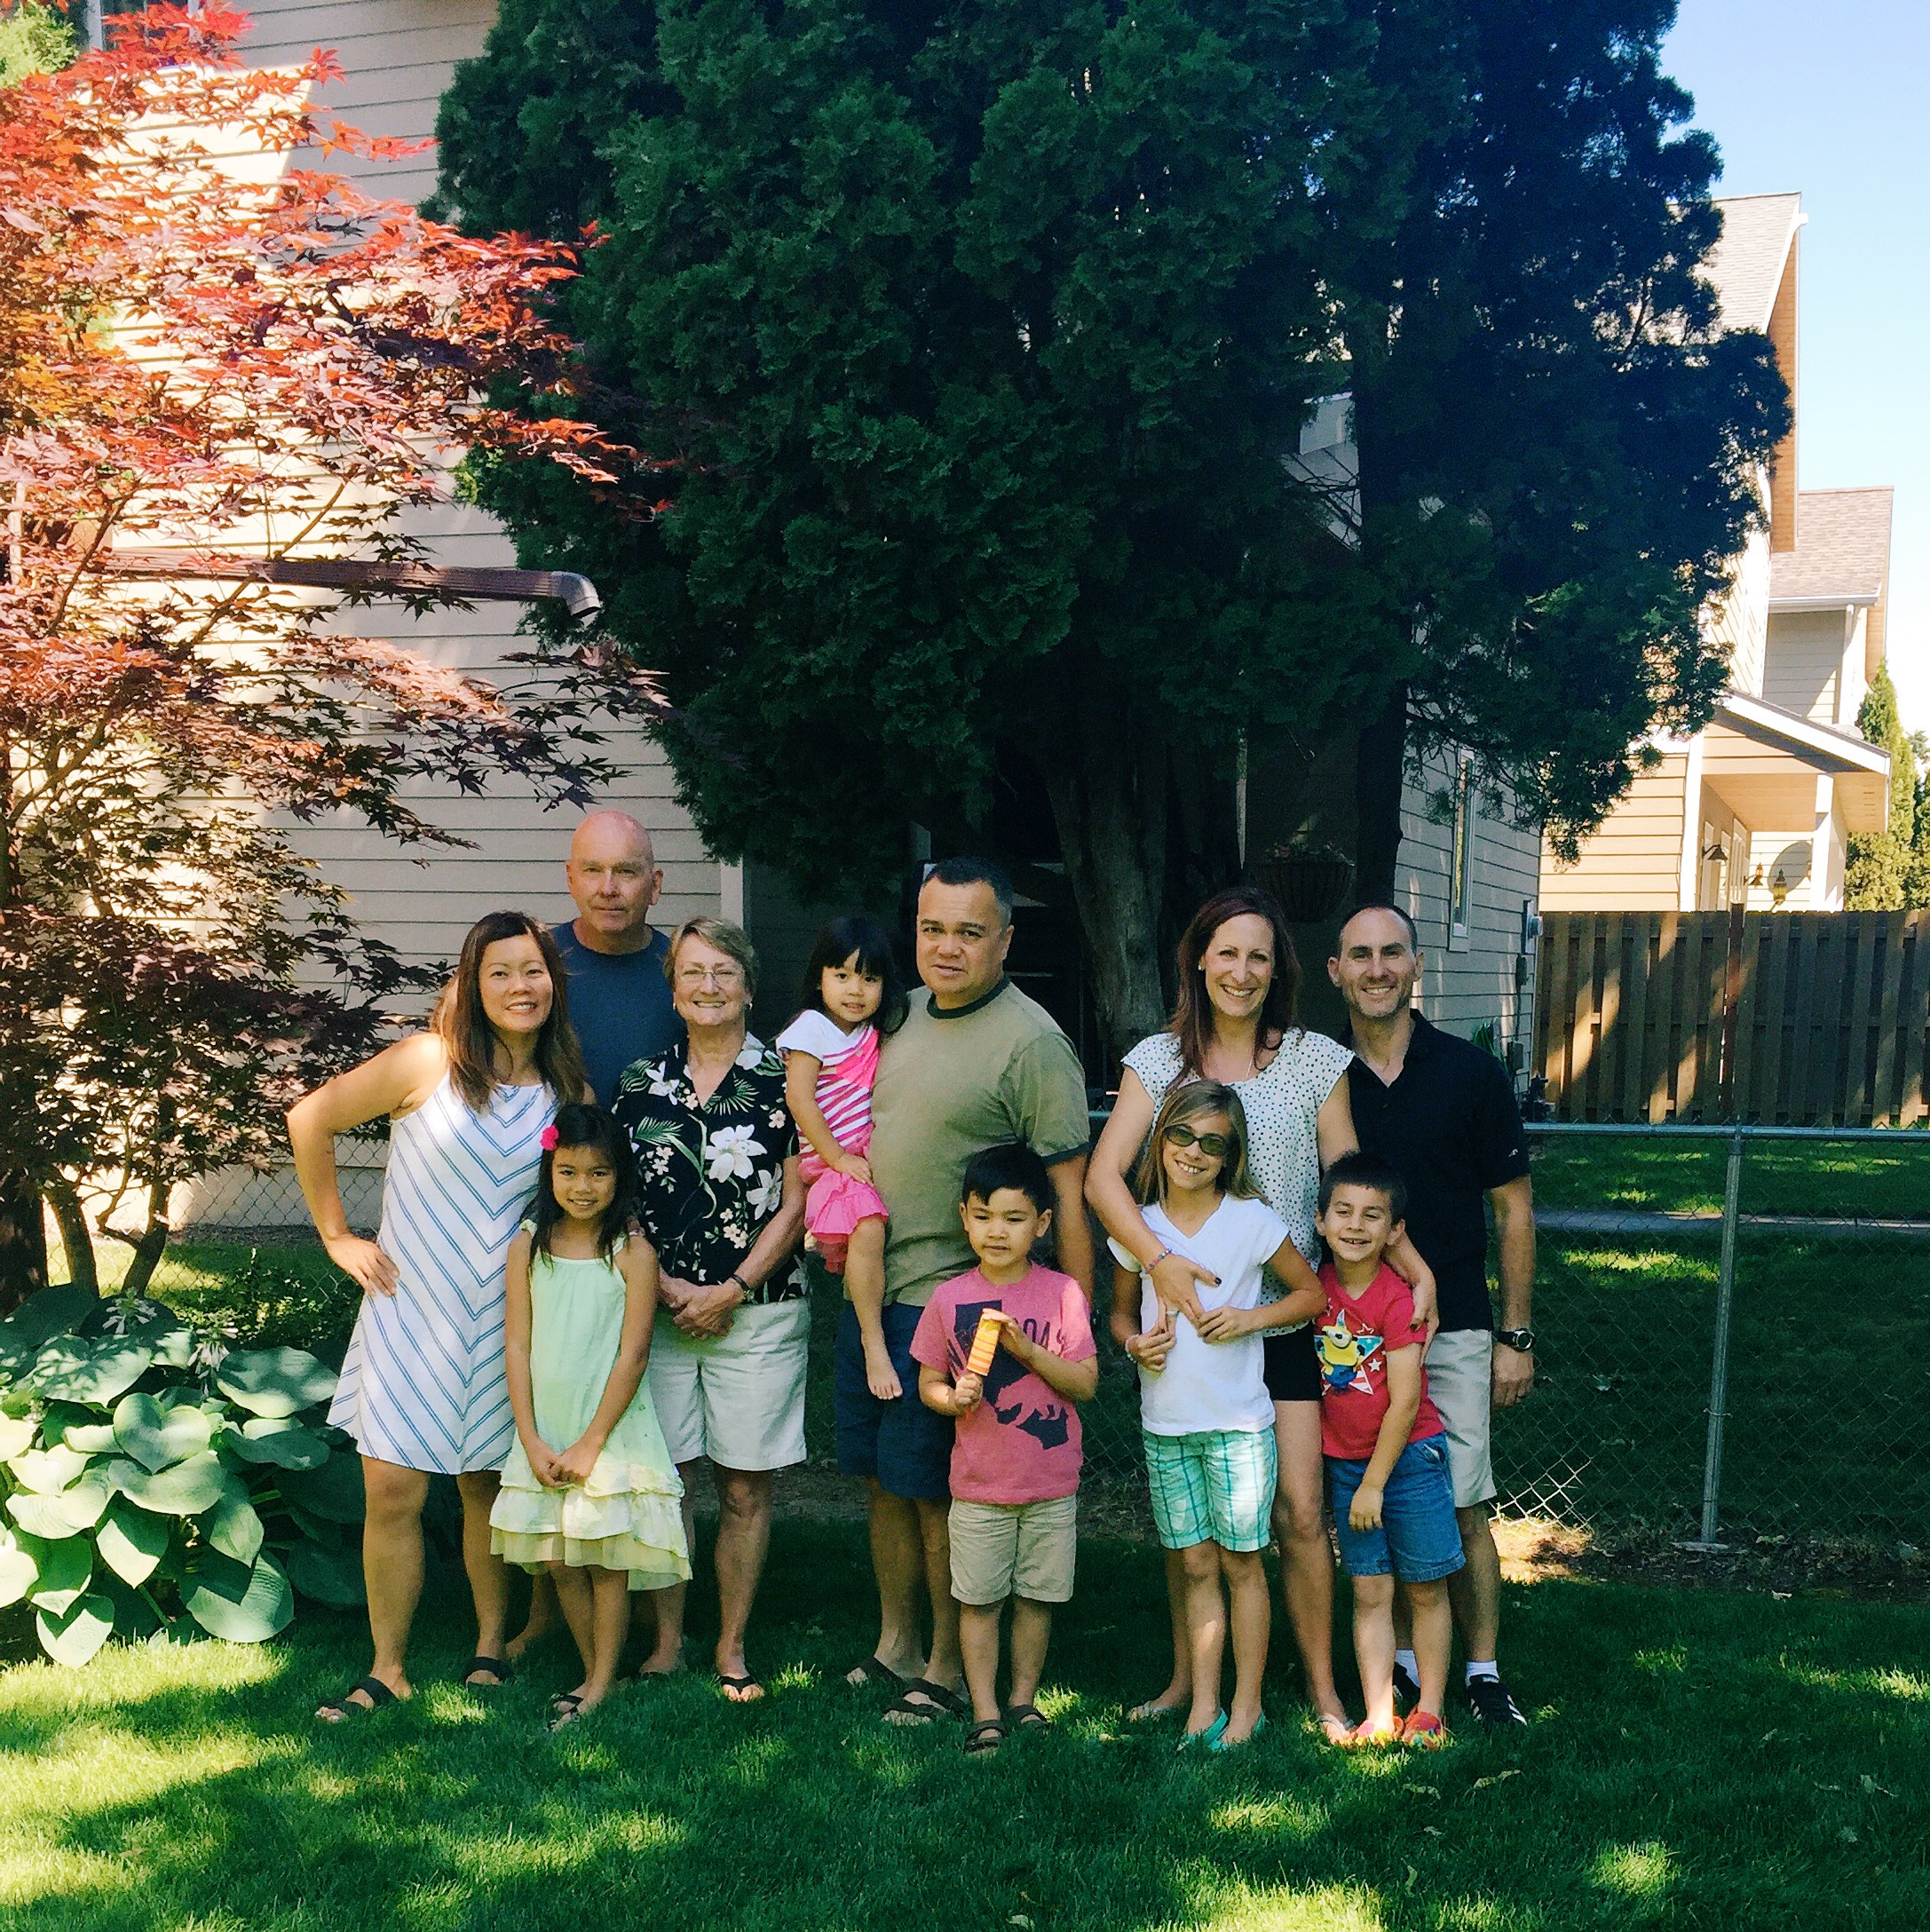 Scott's parents Steve and Grace and our friends the Piazzas